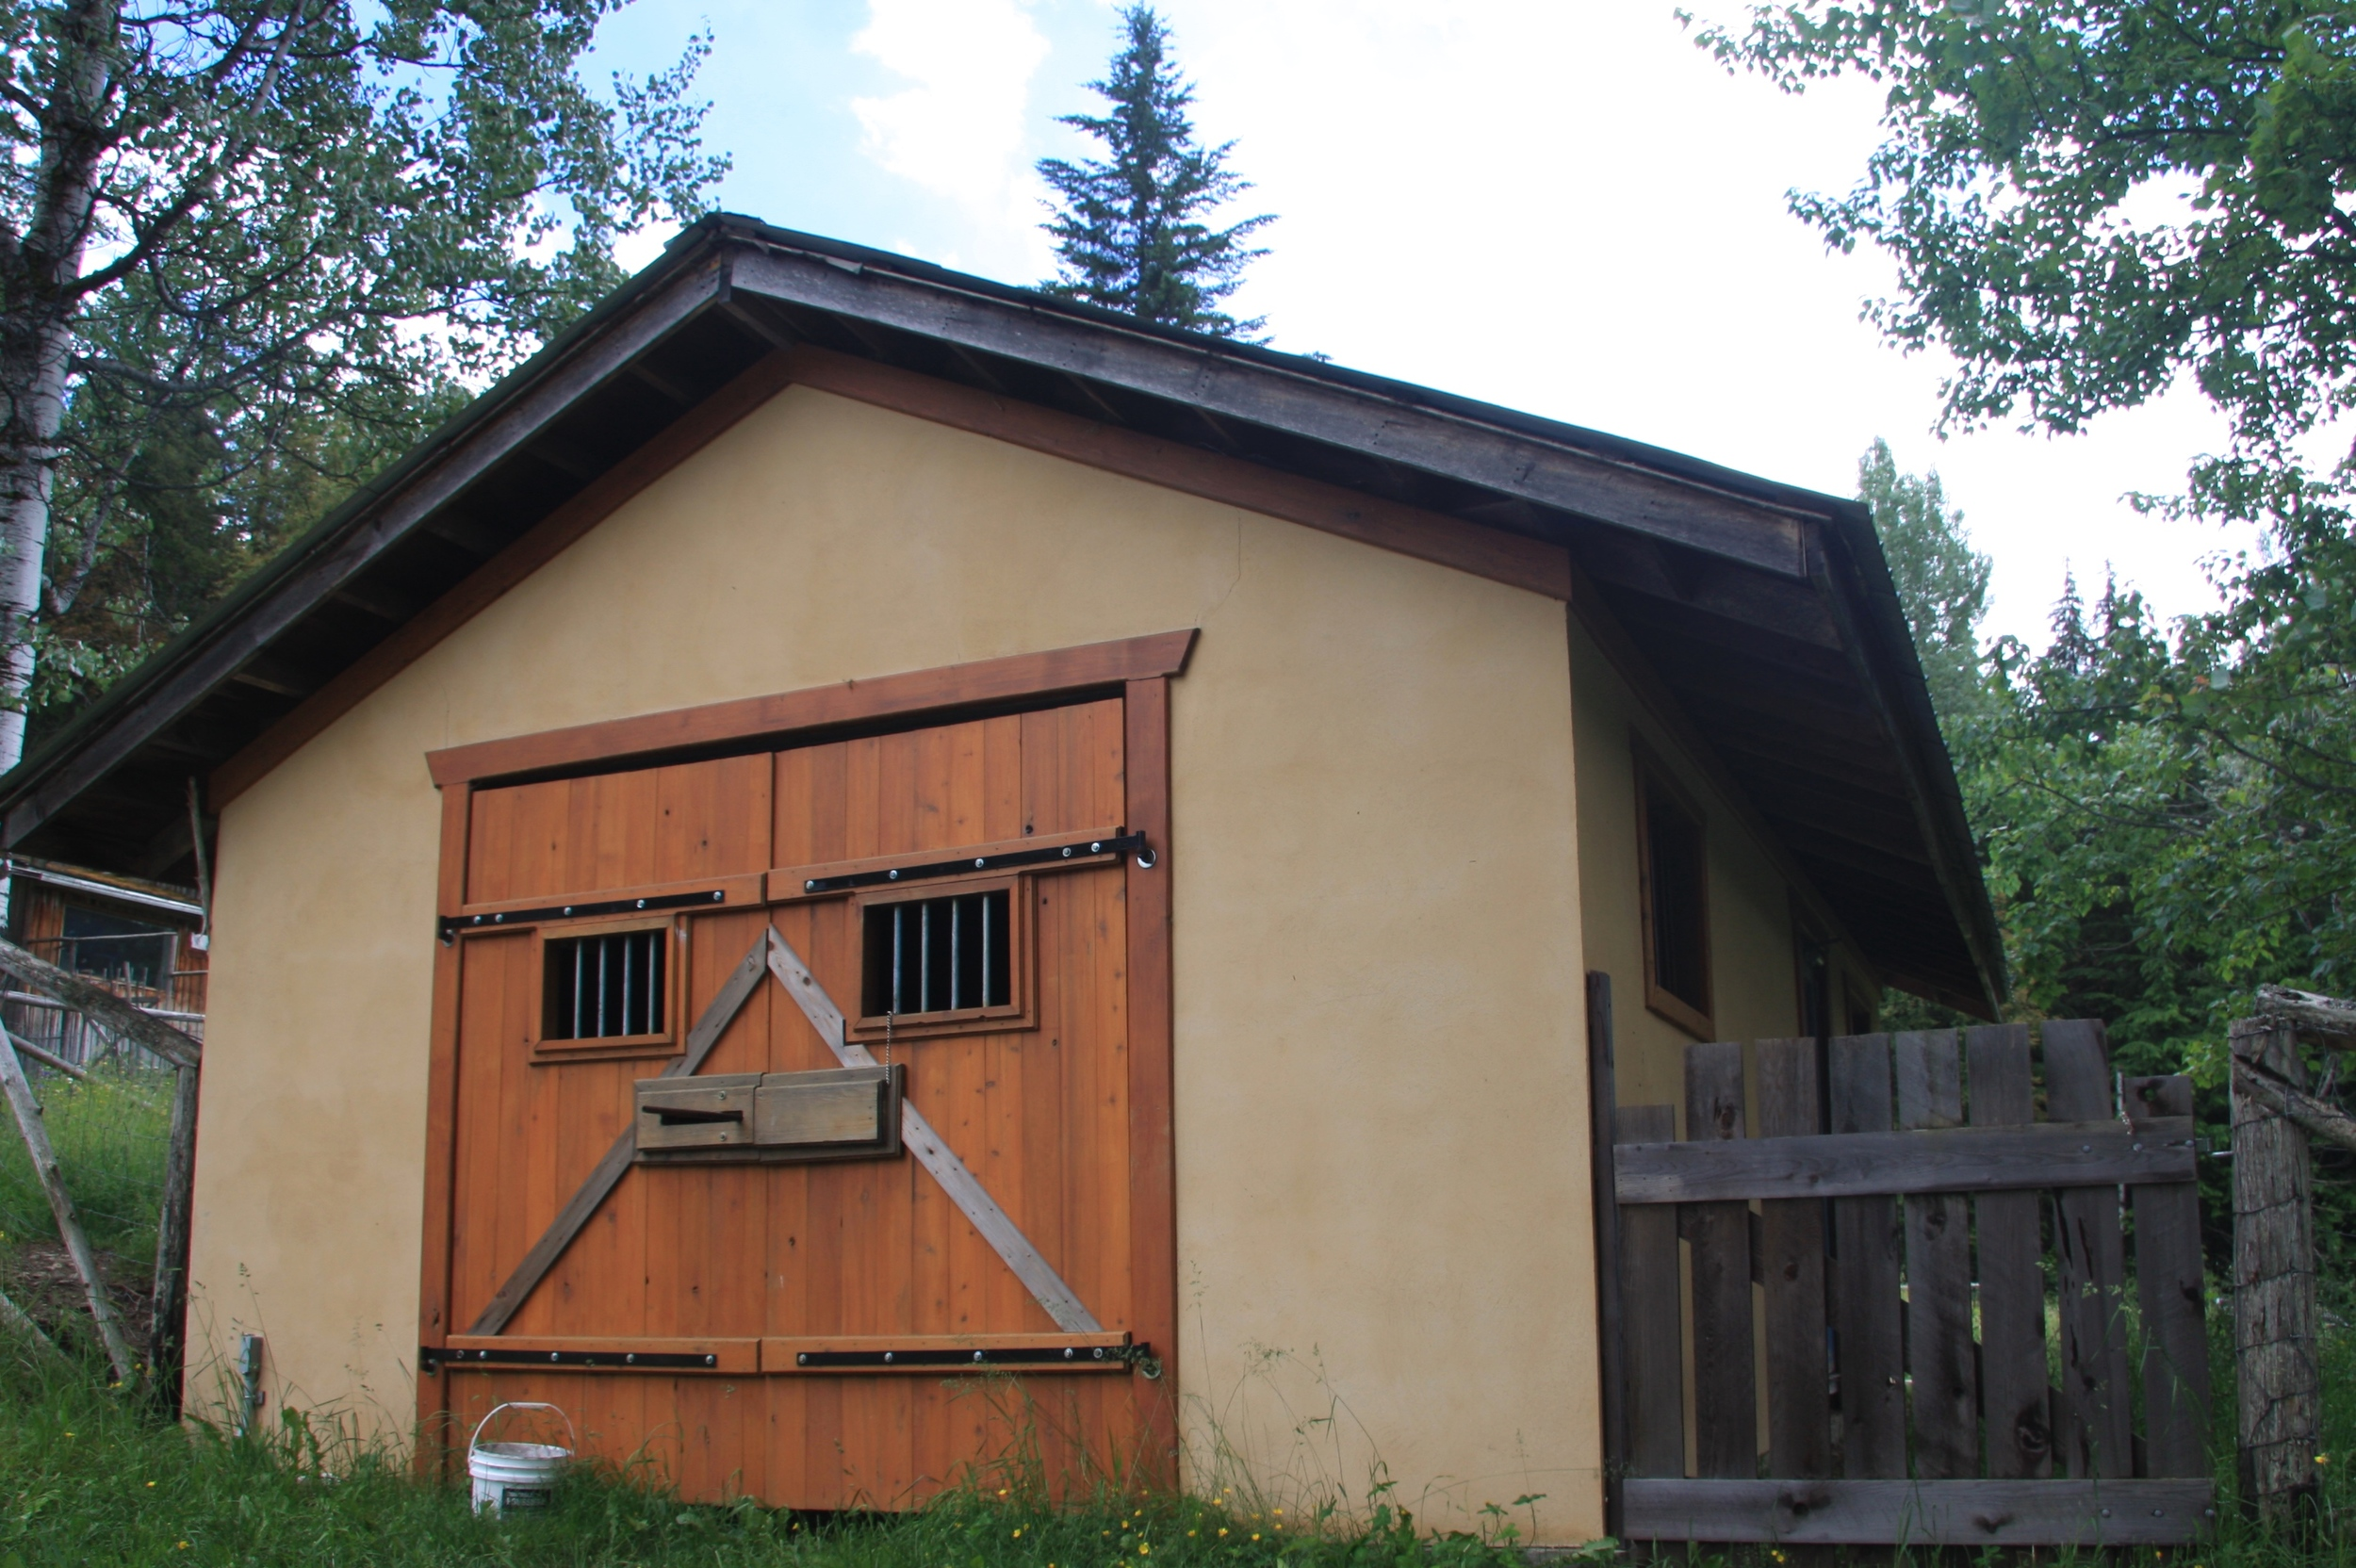 Our Sustainable goat house. We have a family of goats that provide organic dairy.